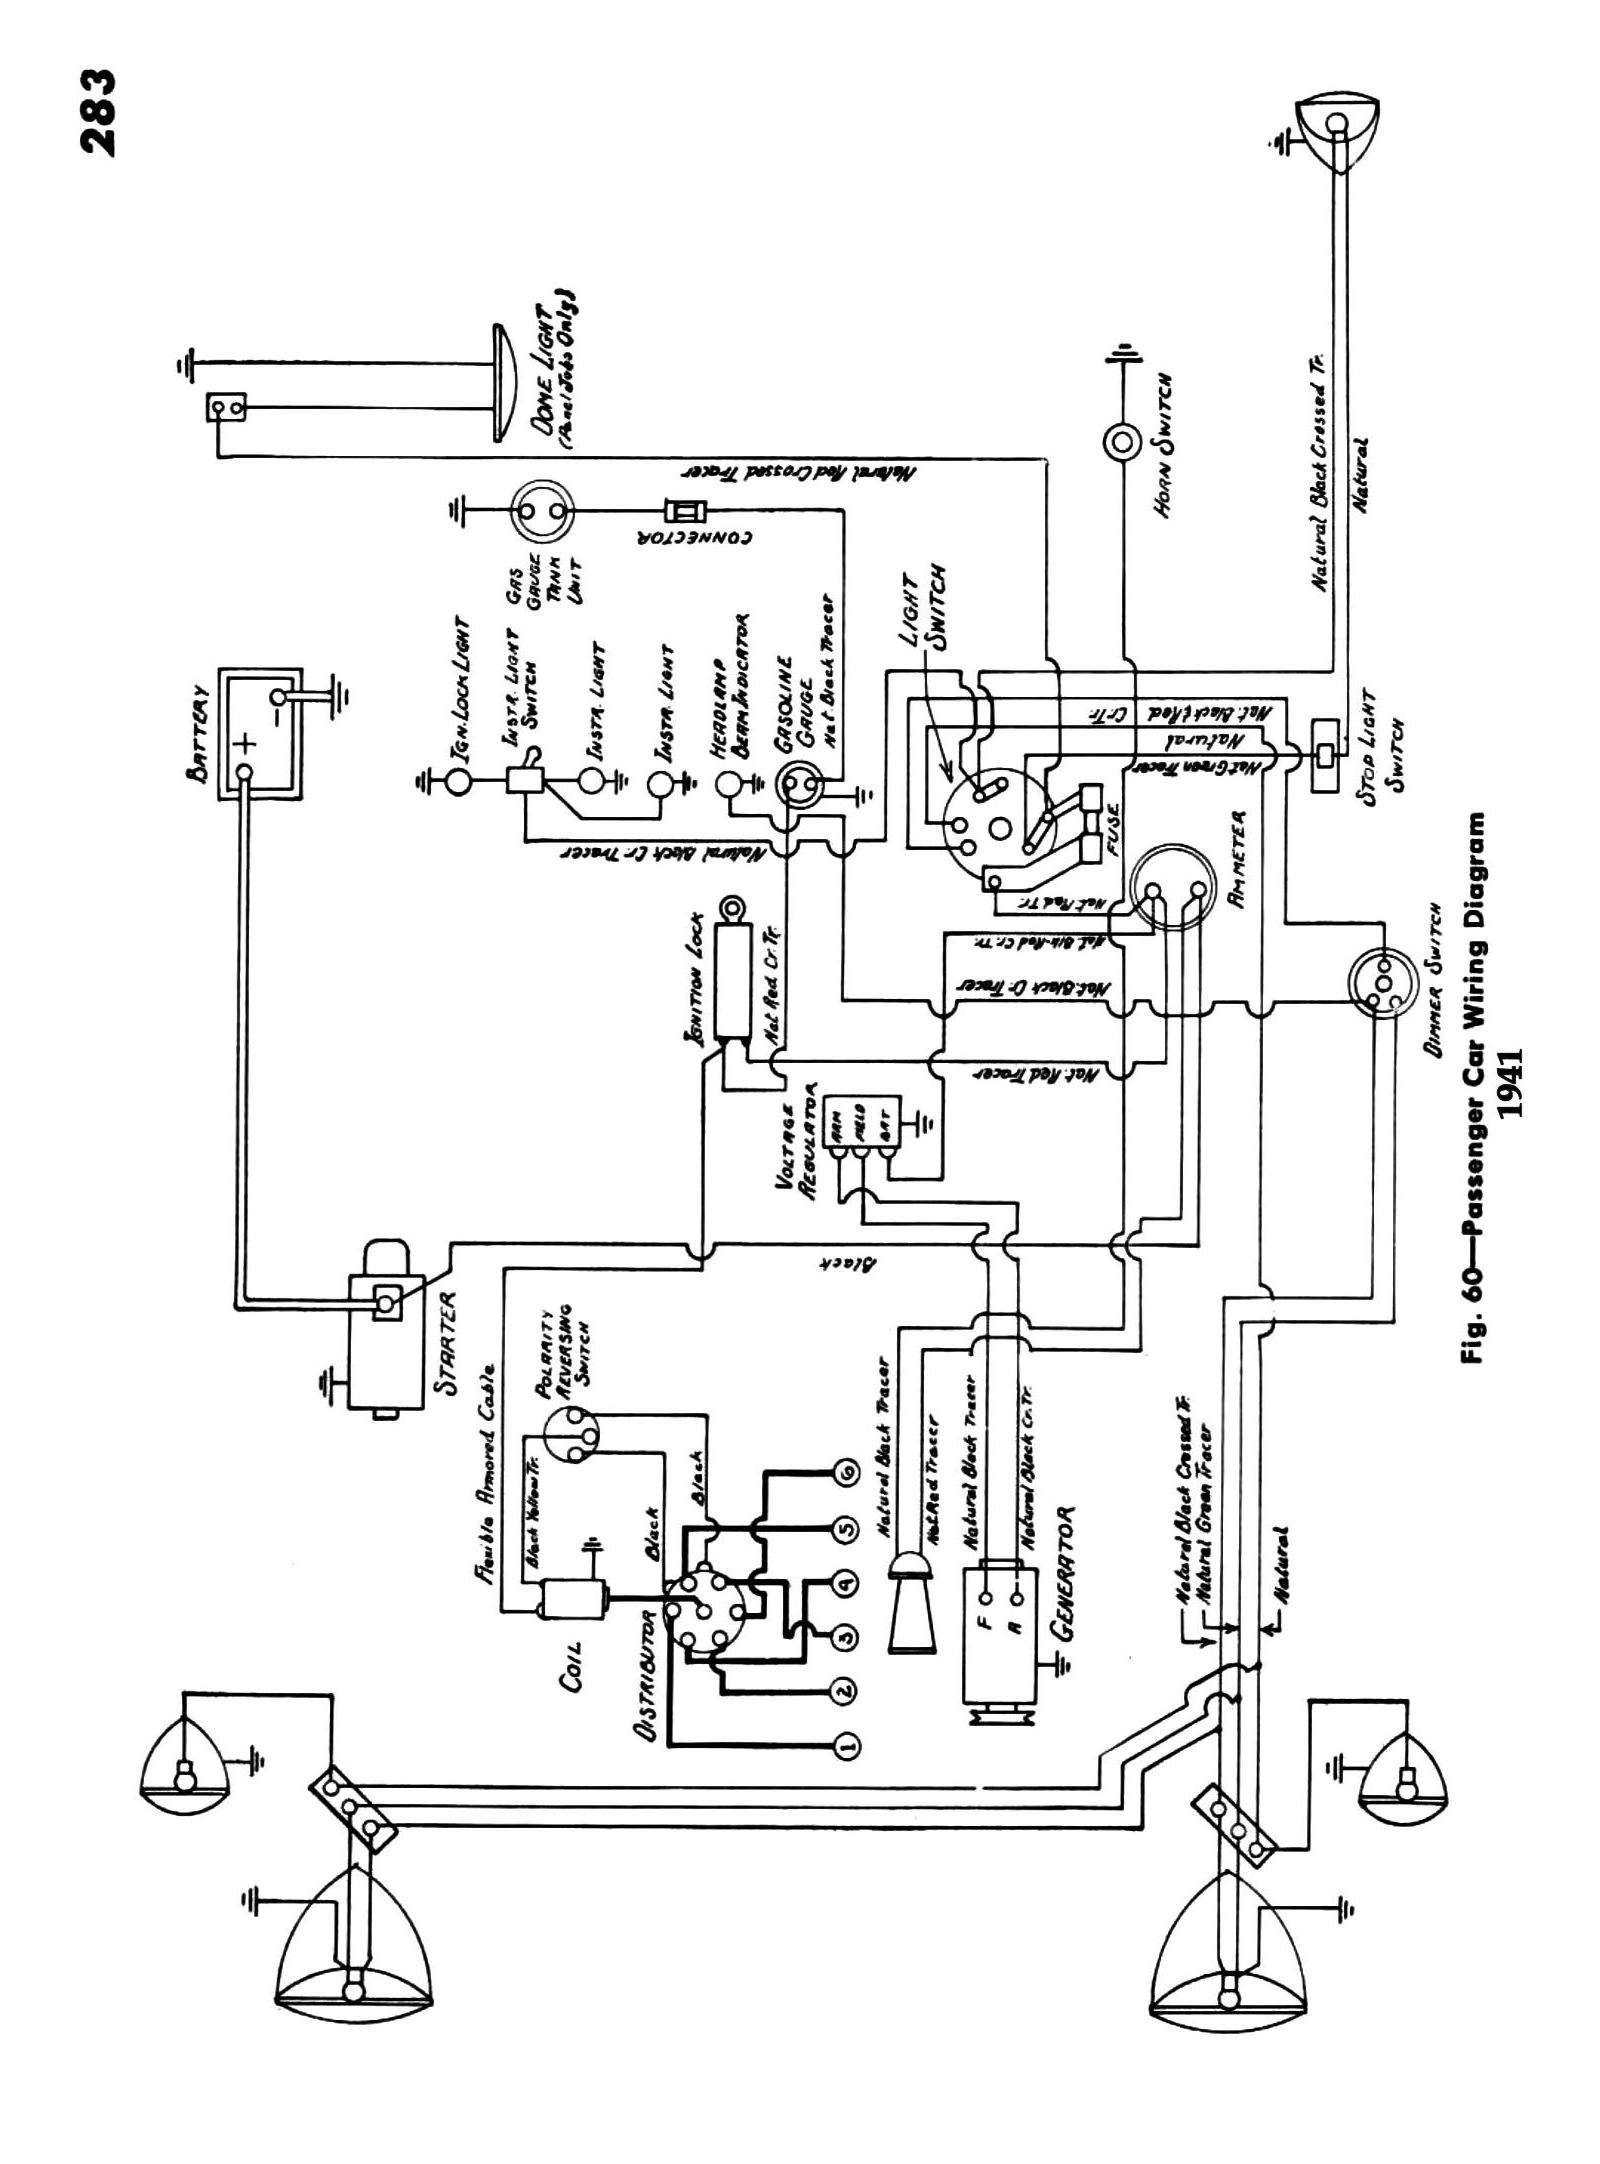 hight resolution of 6 volt positive ground electrical system wiring diagram wiring libraryplymouth ac wiring diagram opinions about wiring